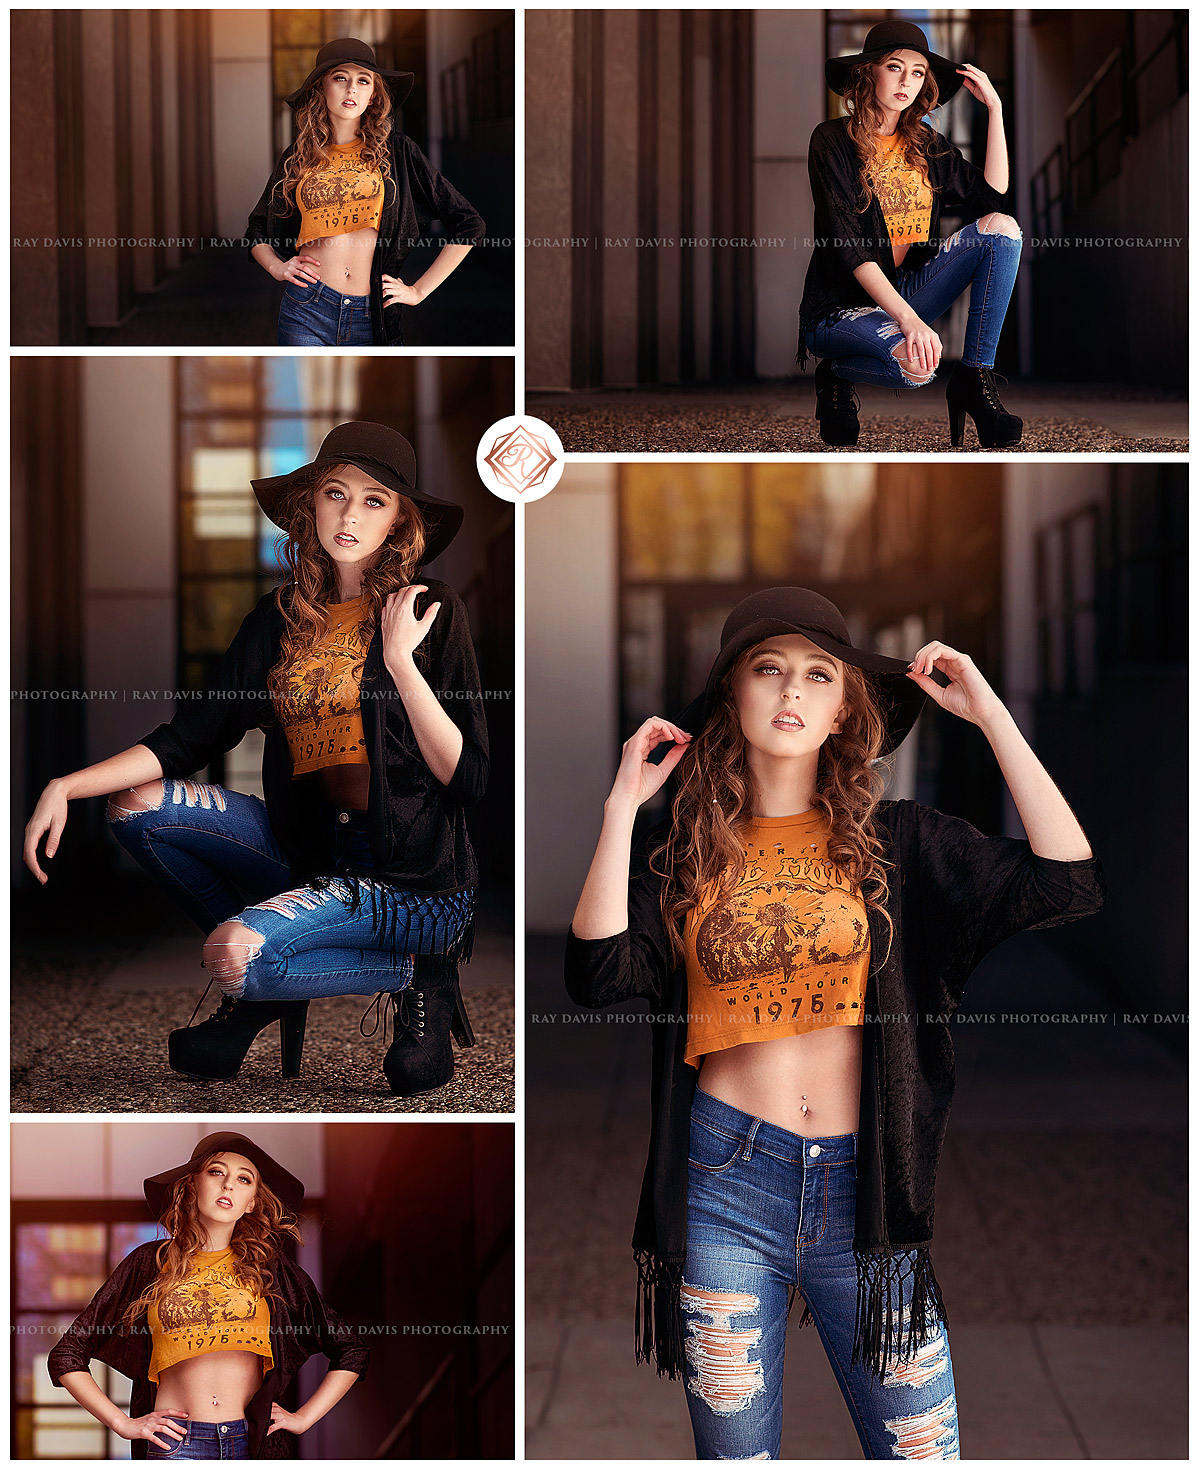 Bold urban senior session with hipster style girl wearing crop top and black floppy hat for pictures with Top Louisville Senior Photographer Ray Davis Photography